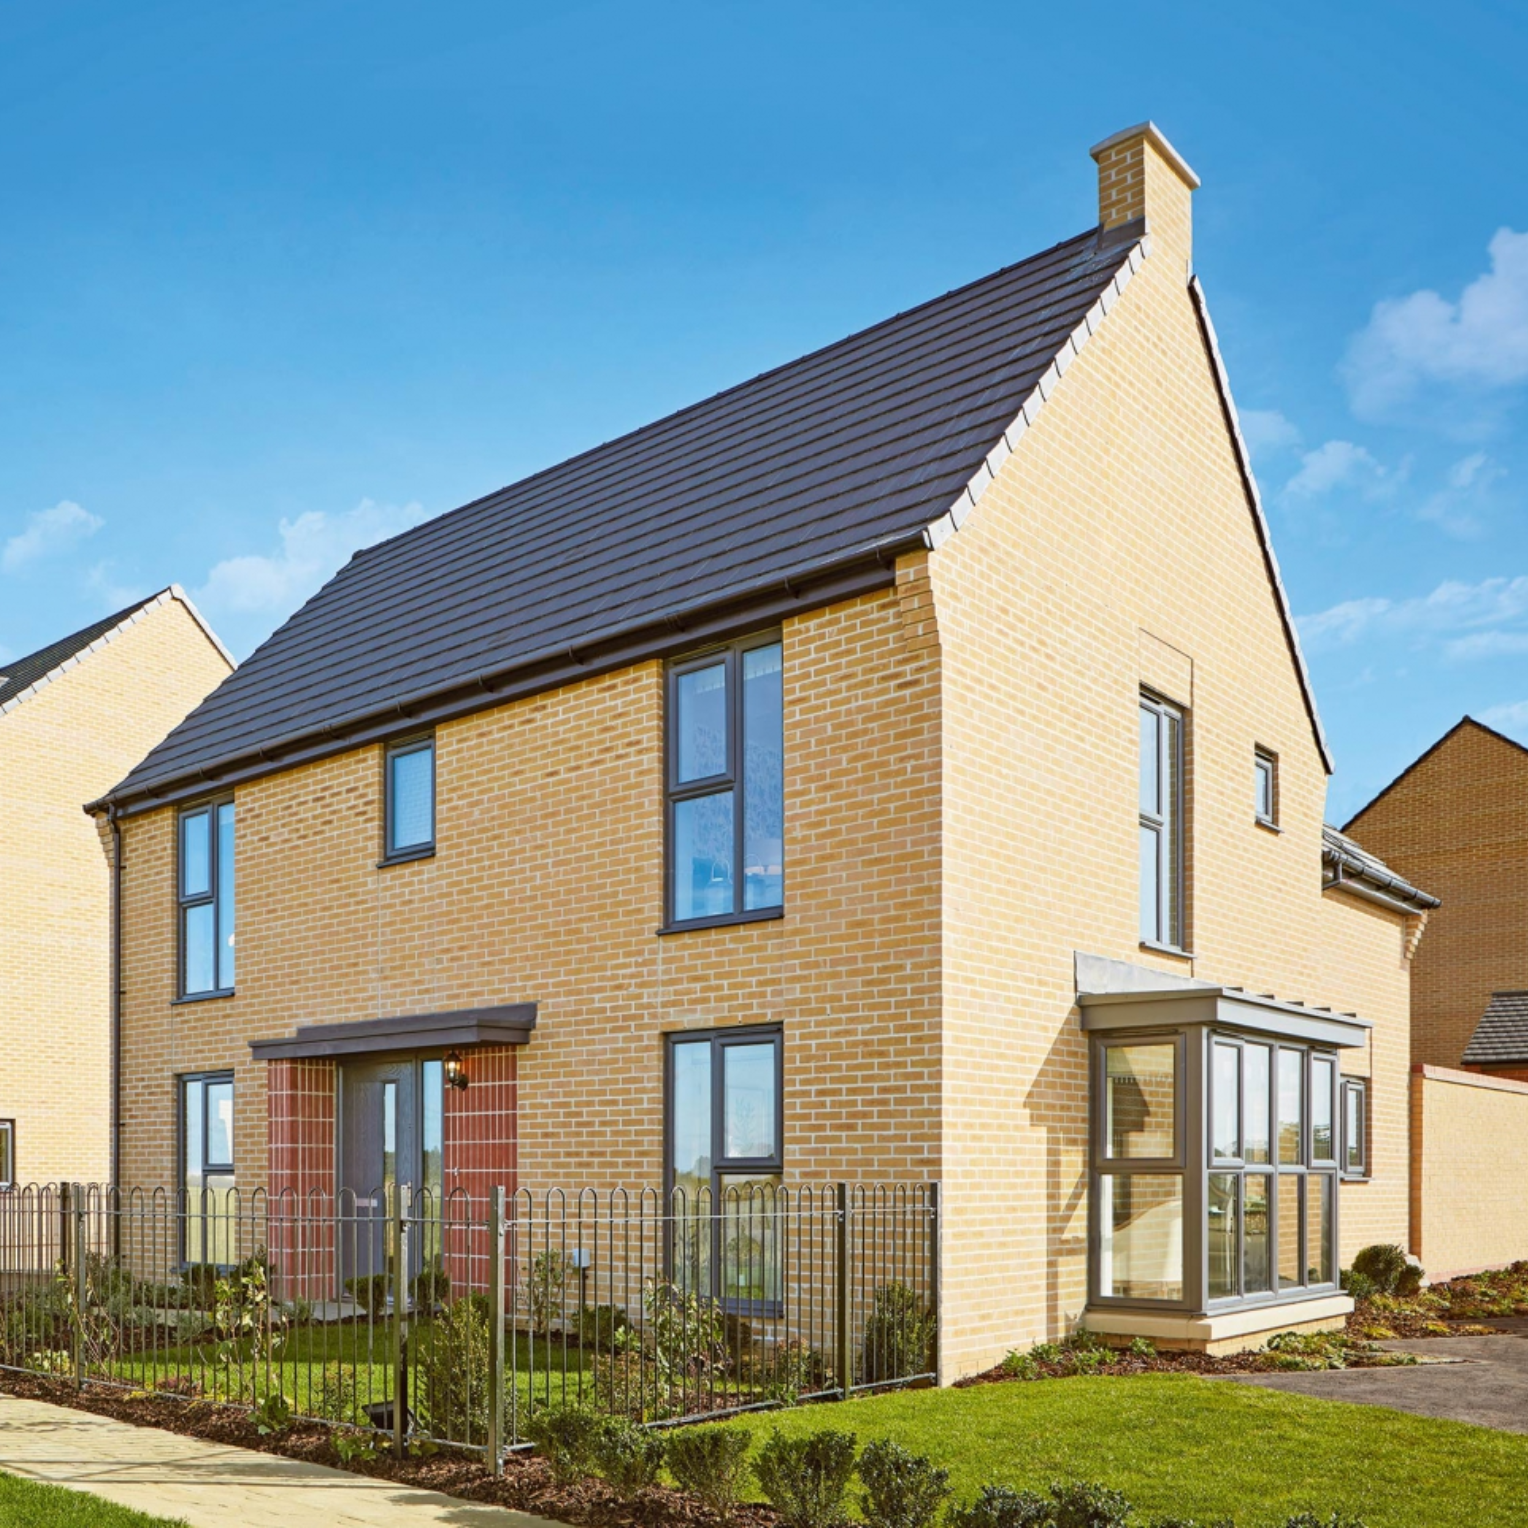 LINDENHOMES - 2, 3, 4 & 5 bedroom homes from£279,995 to £564,950